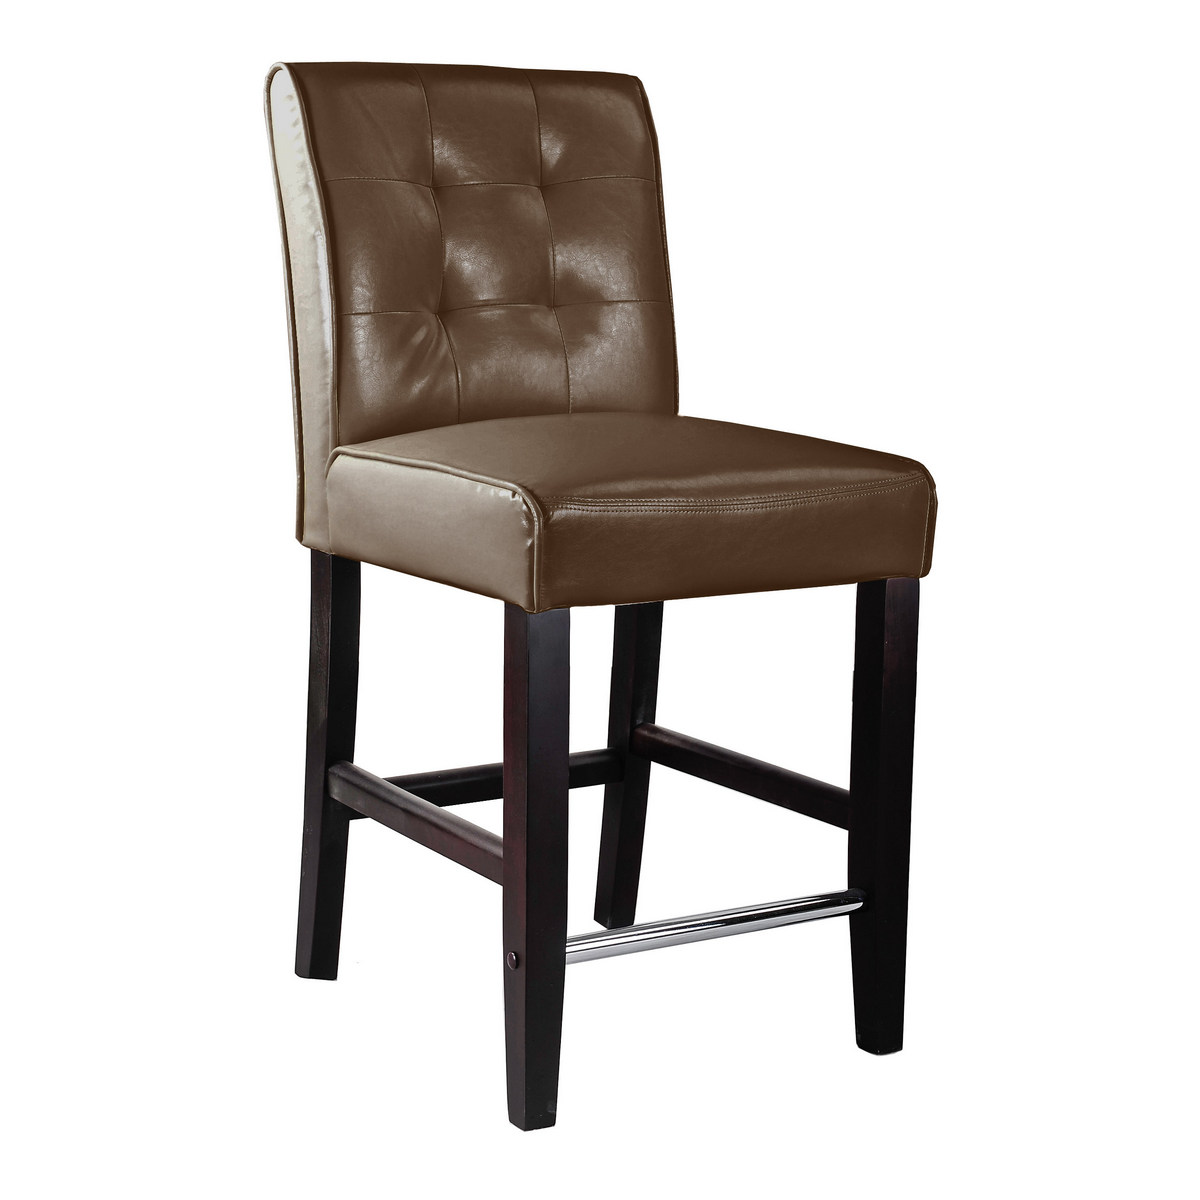 CorLiving DAD-484-B Antonio Counter Height Barstool in Dark Brown Bonded Leather